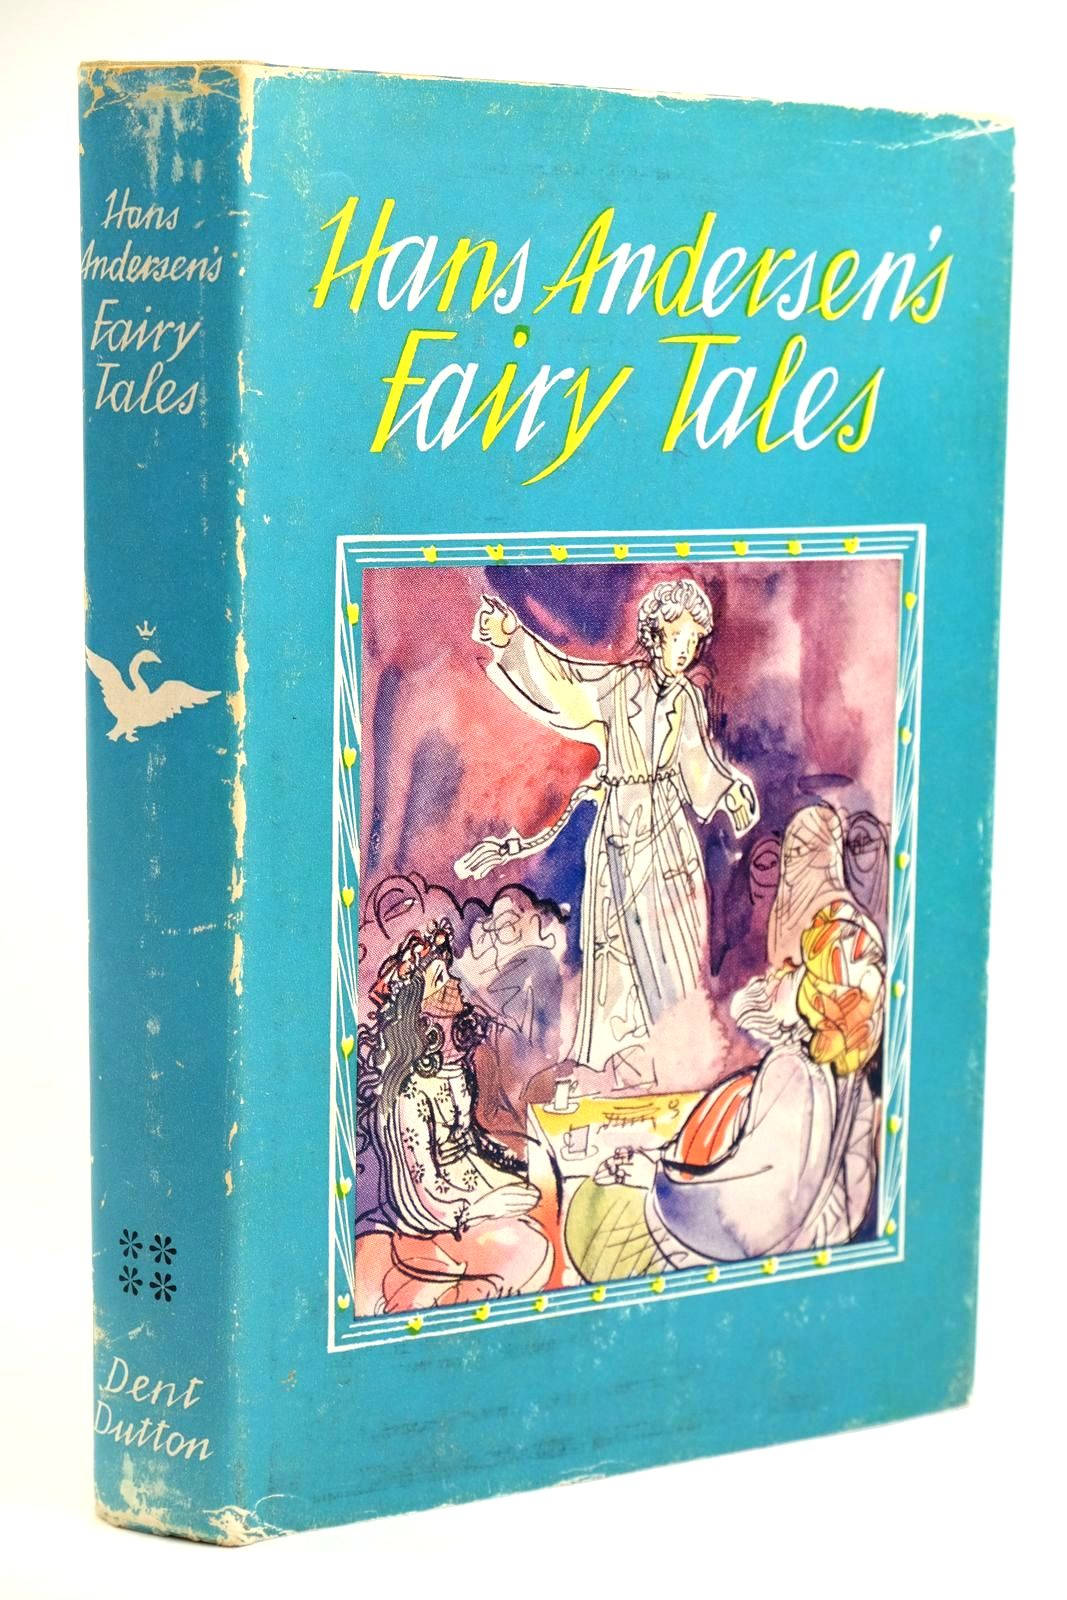 Photo of HANS ANDERSEN'S FAIRY TALES- Stock Number: 1319182